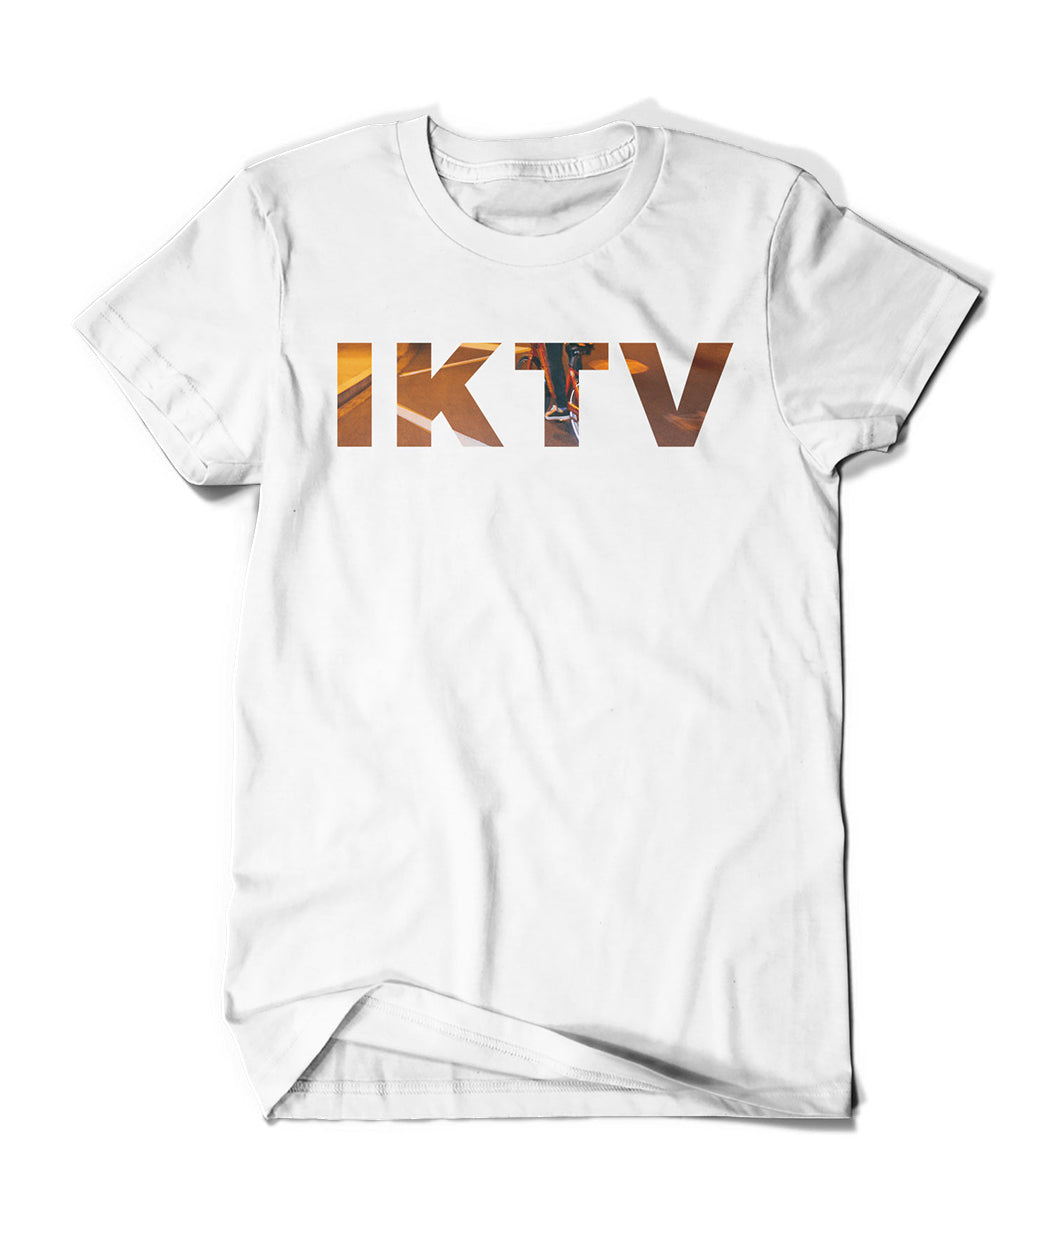 IKTV Bike White Shirt